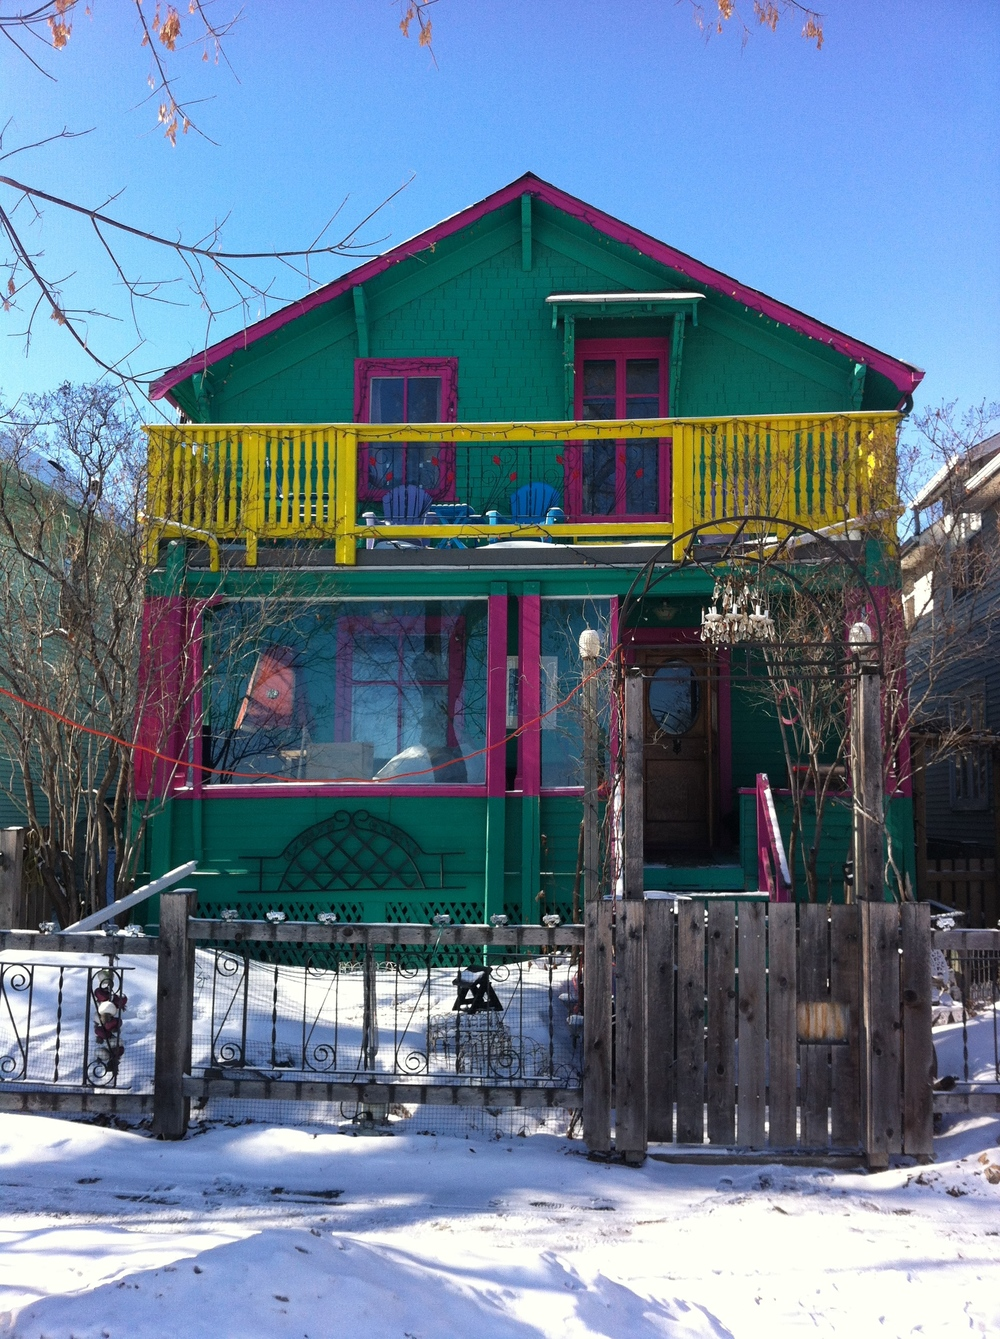 Just down the street from Sketch is this hippy house, how cool is this!